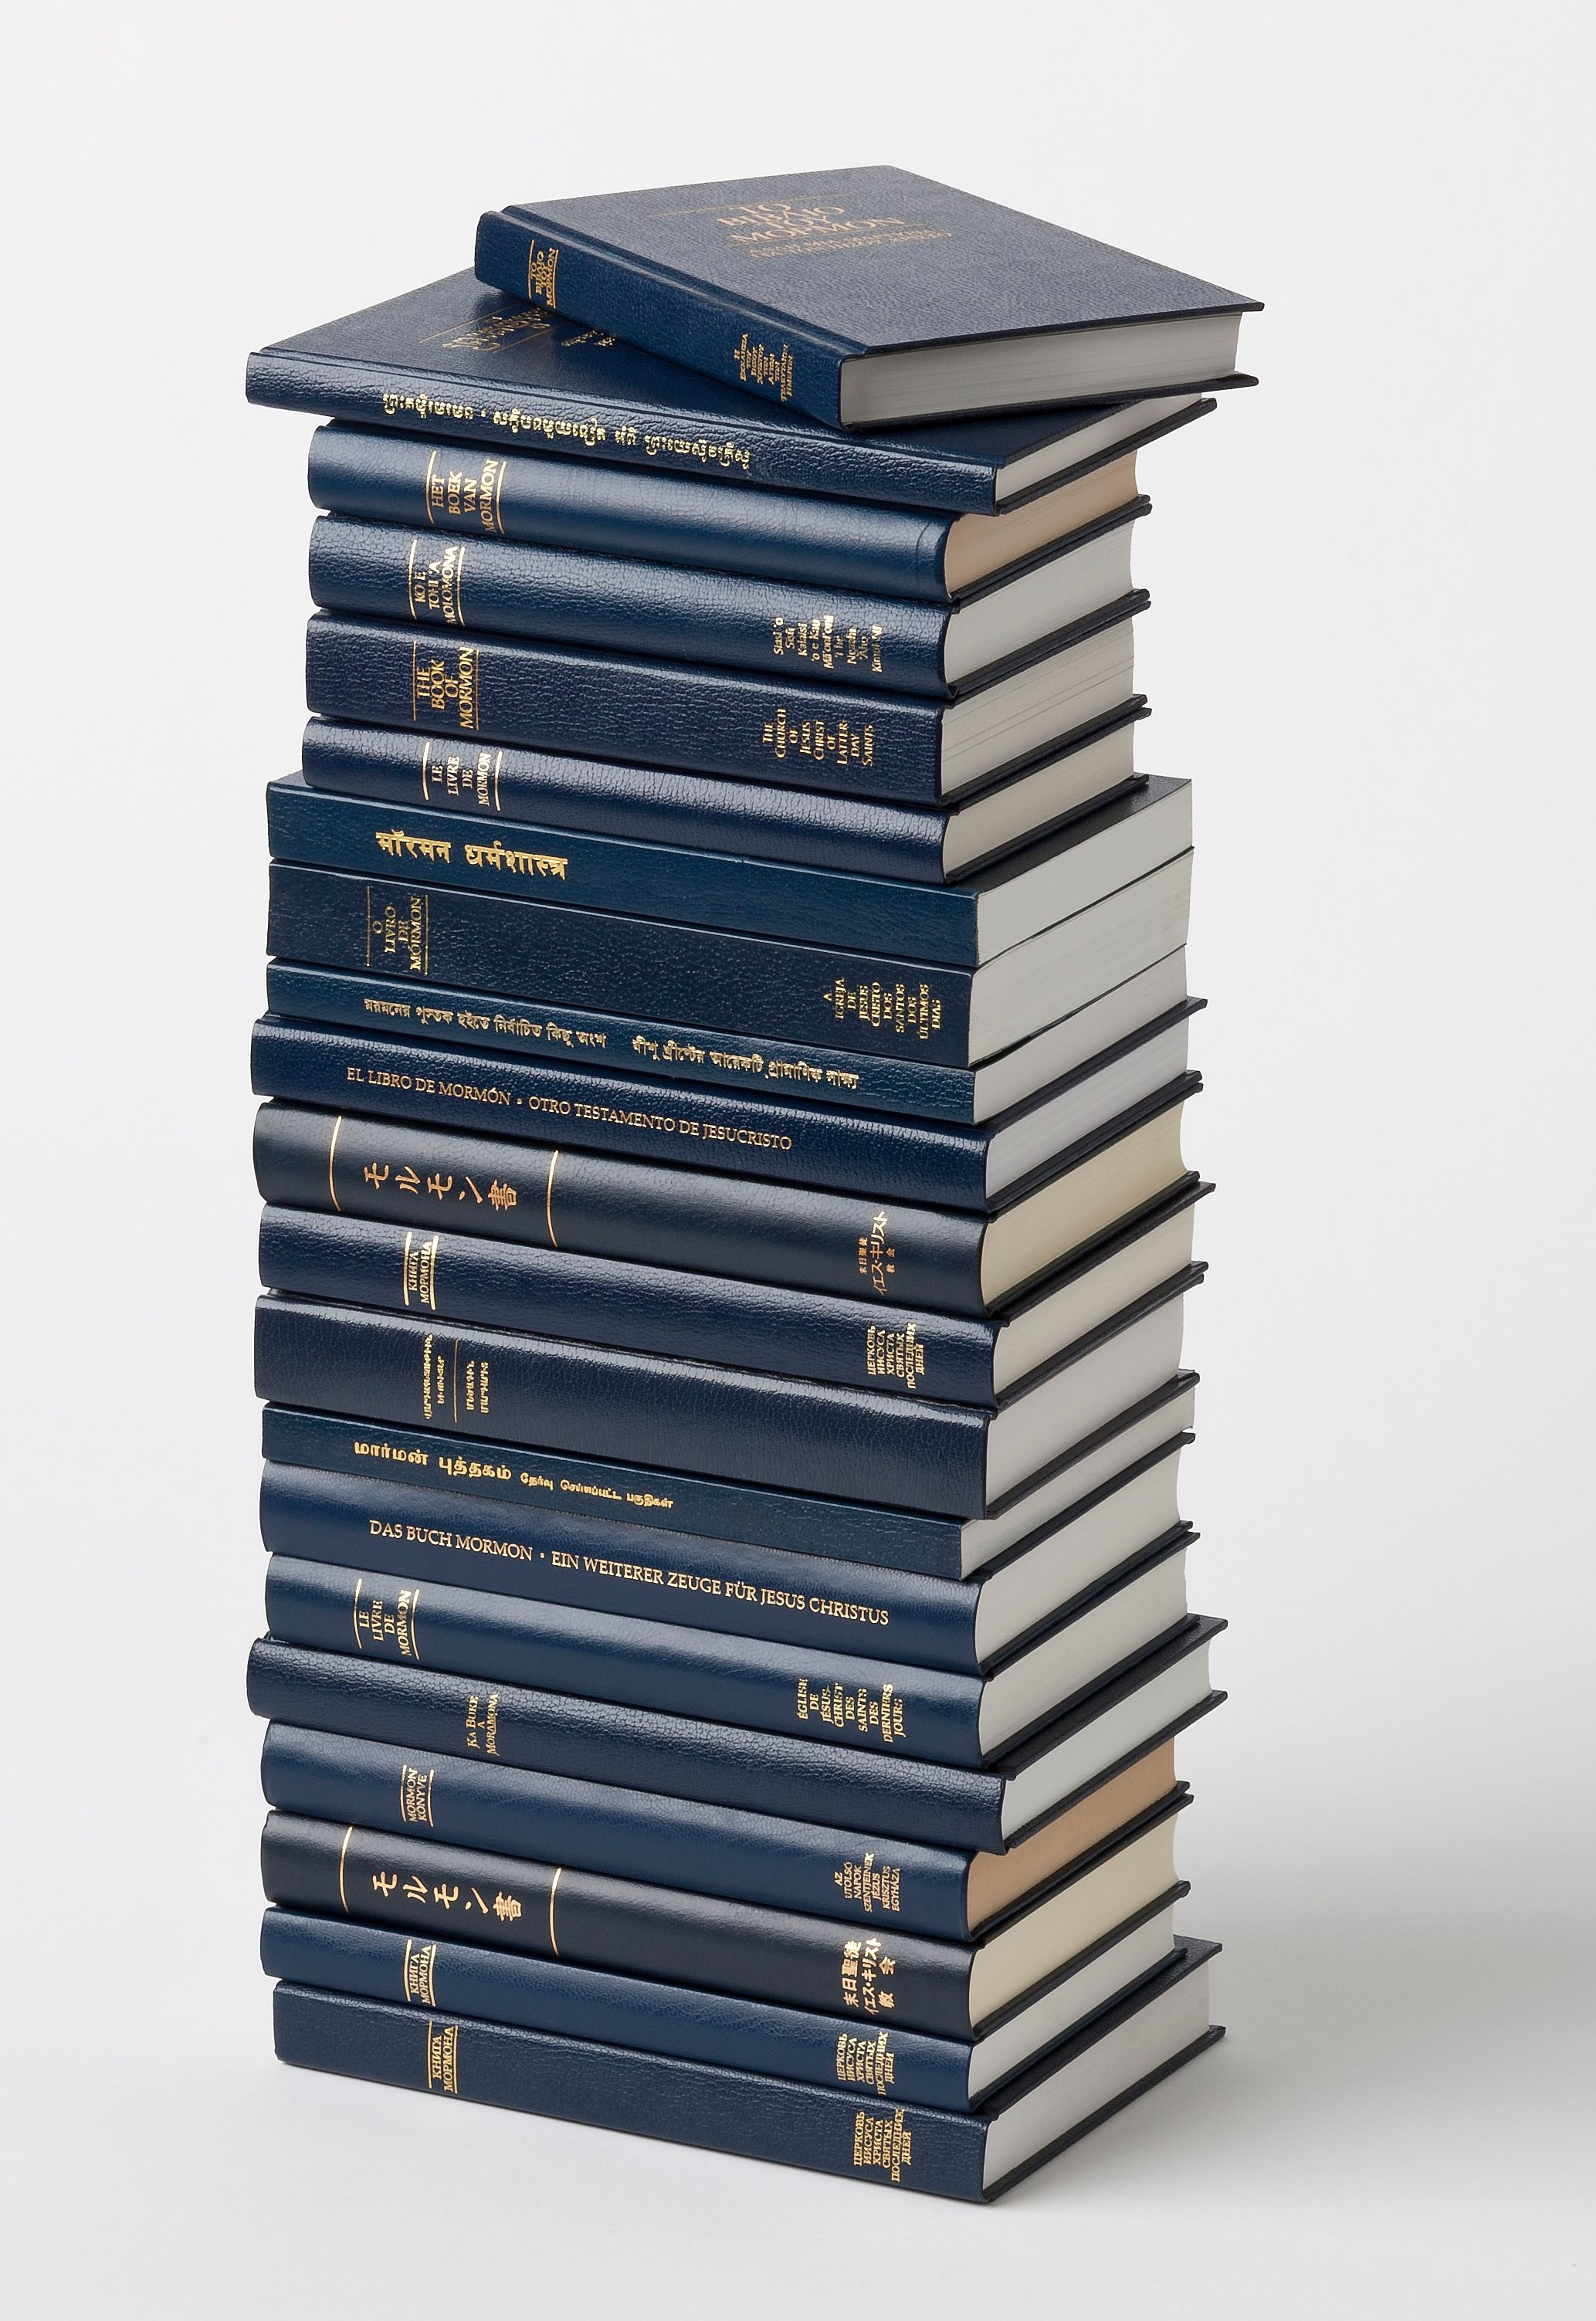 A stack of 21 copies of the Book of Mormon.